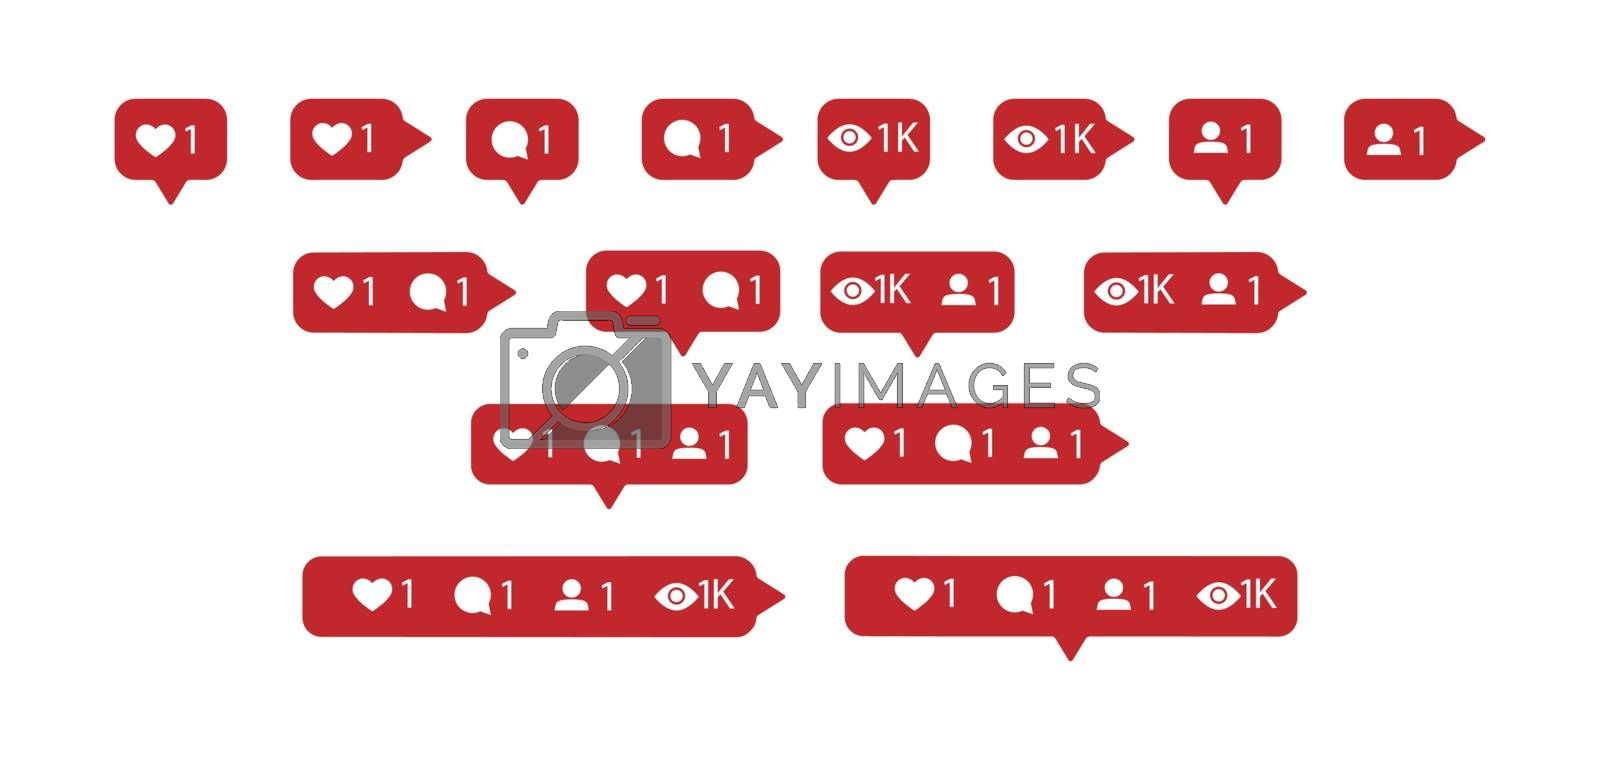 Activity icons for websites, apps, and social networks. Number of subscribers, friends views and messages.